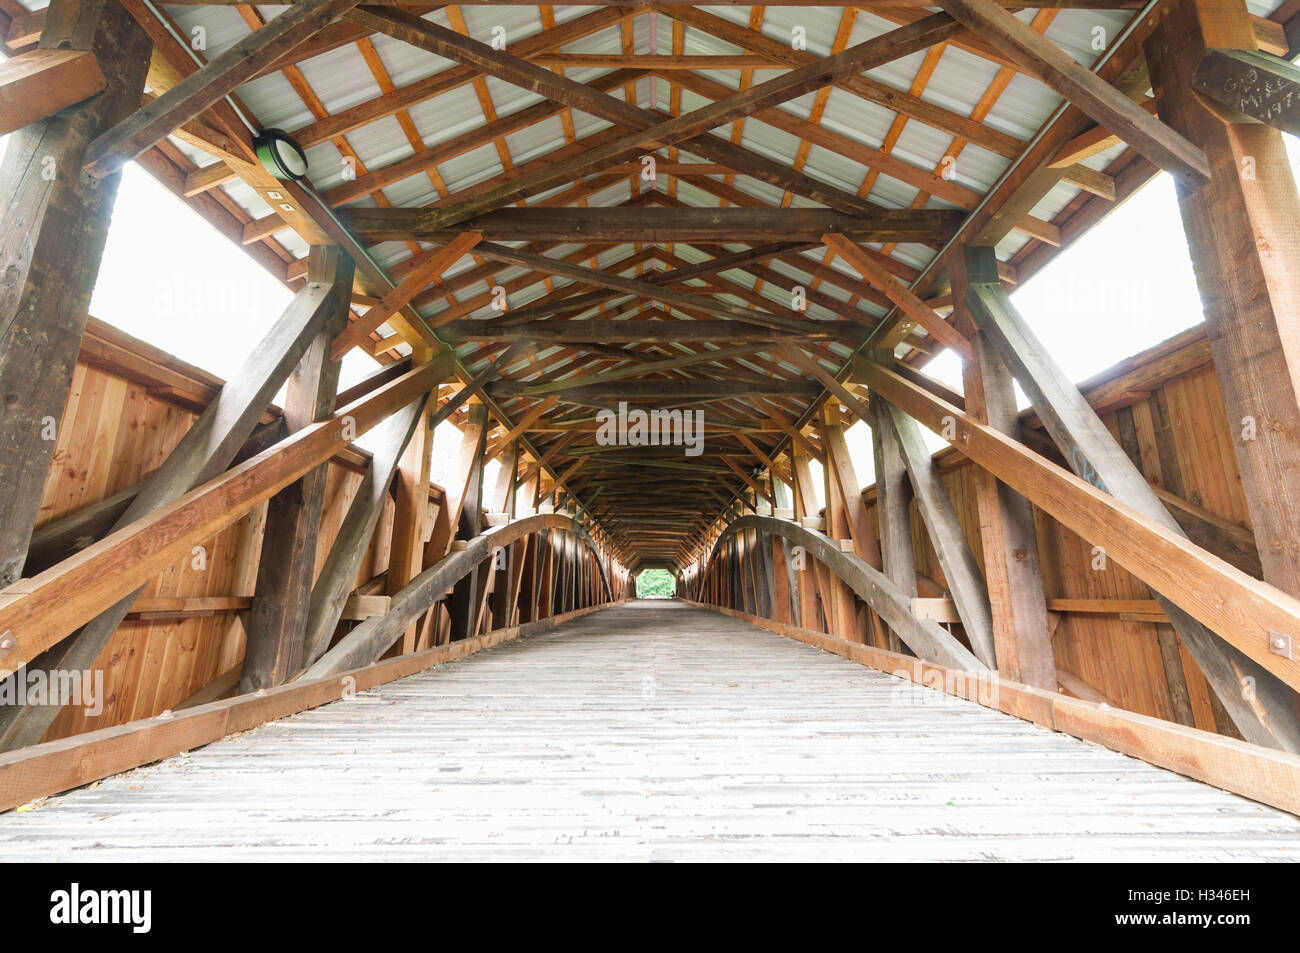 Roof Trusses Inside Stock Photos Amp Roof Trusses Inside